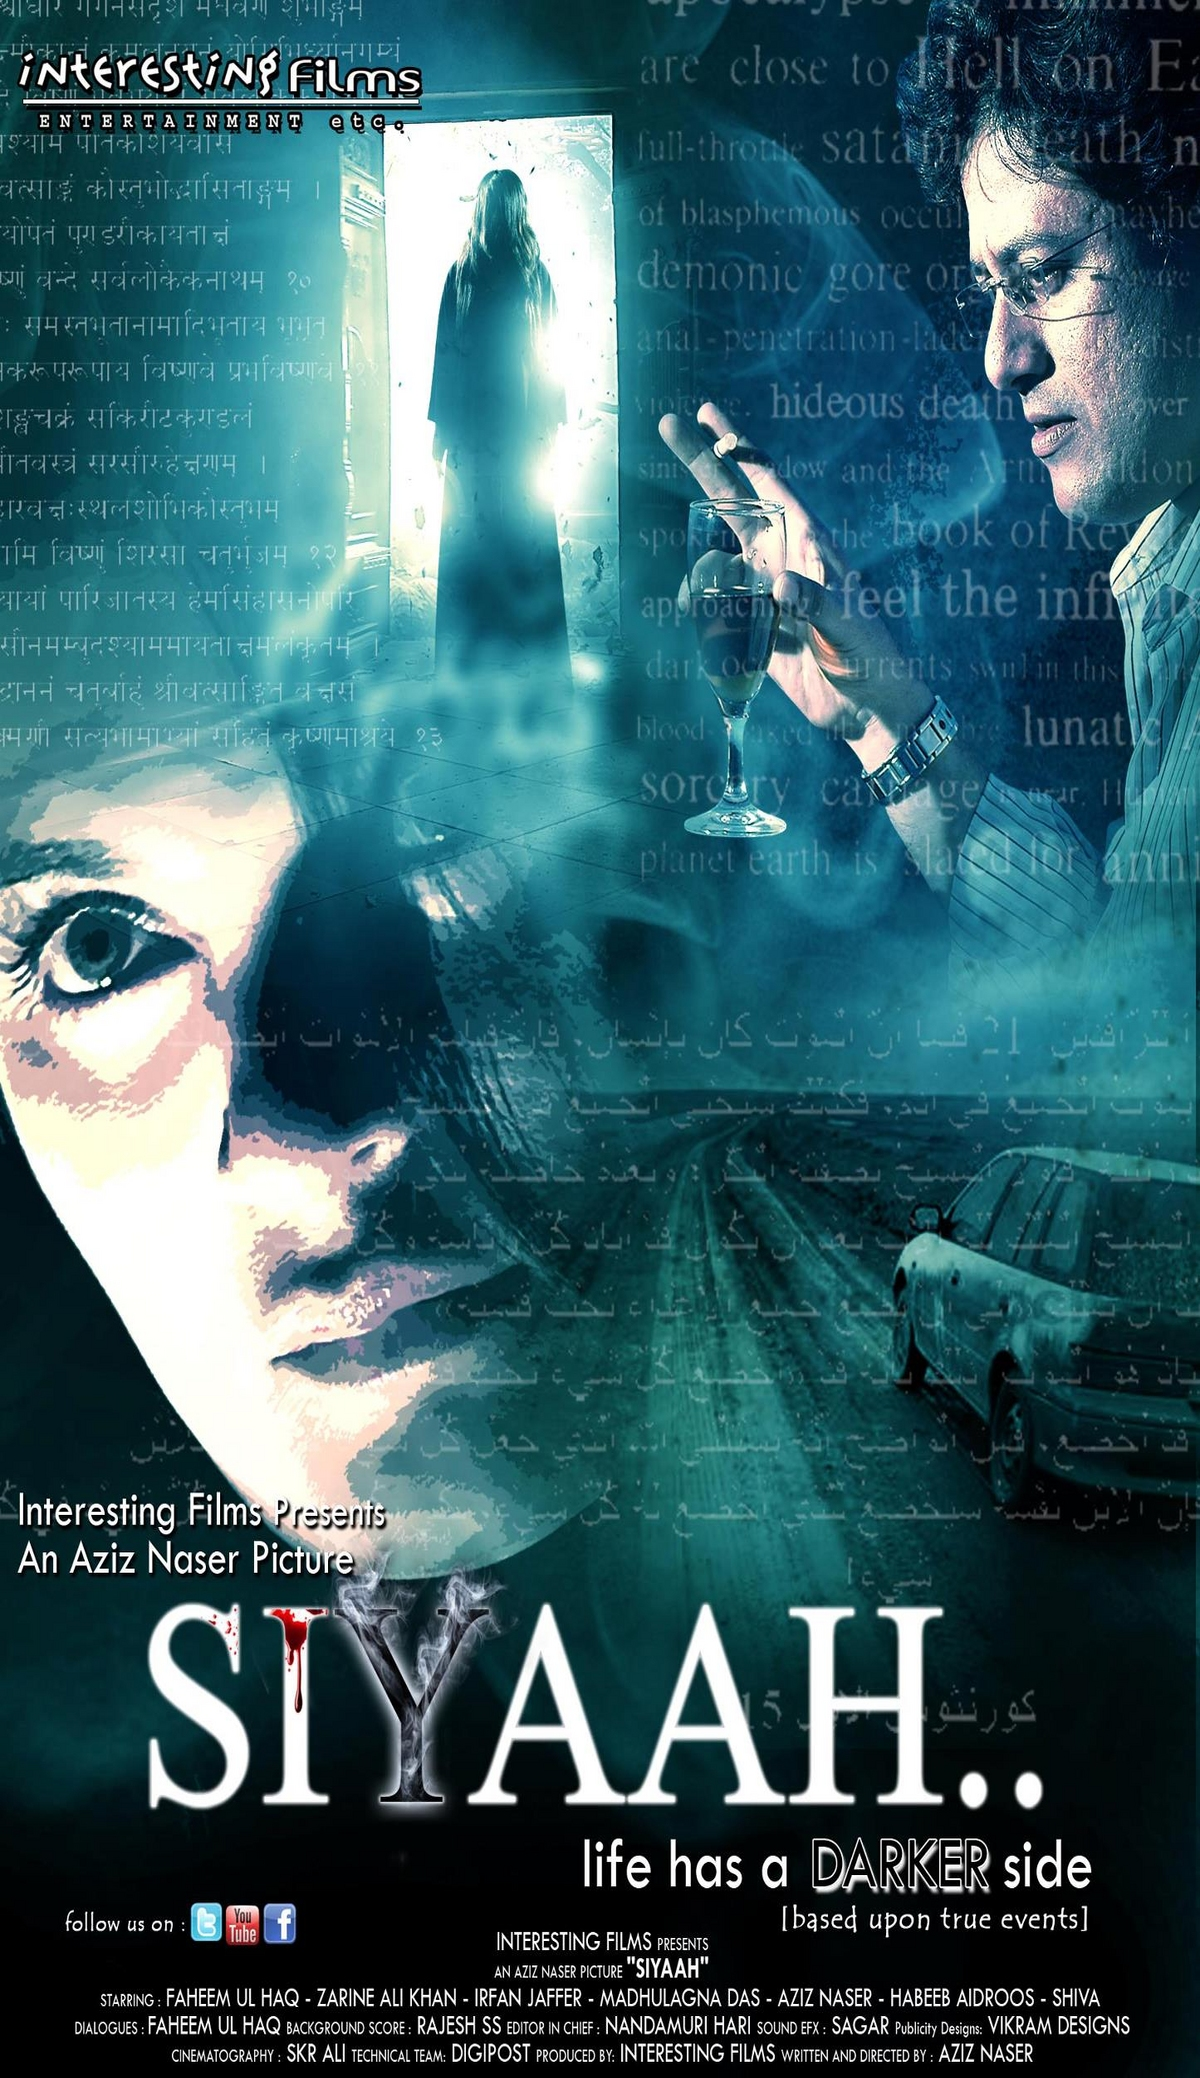 Siyaah.. - Movie Poster #1 (Original)